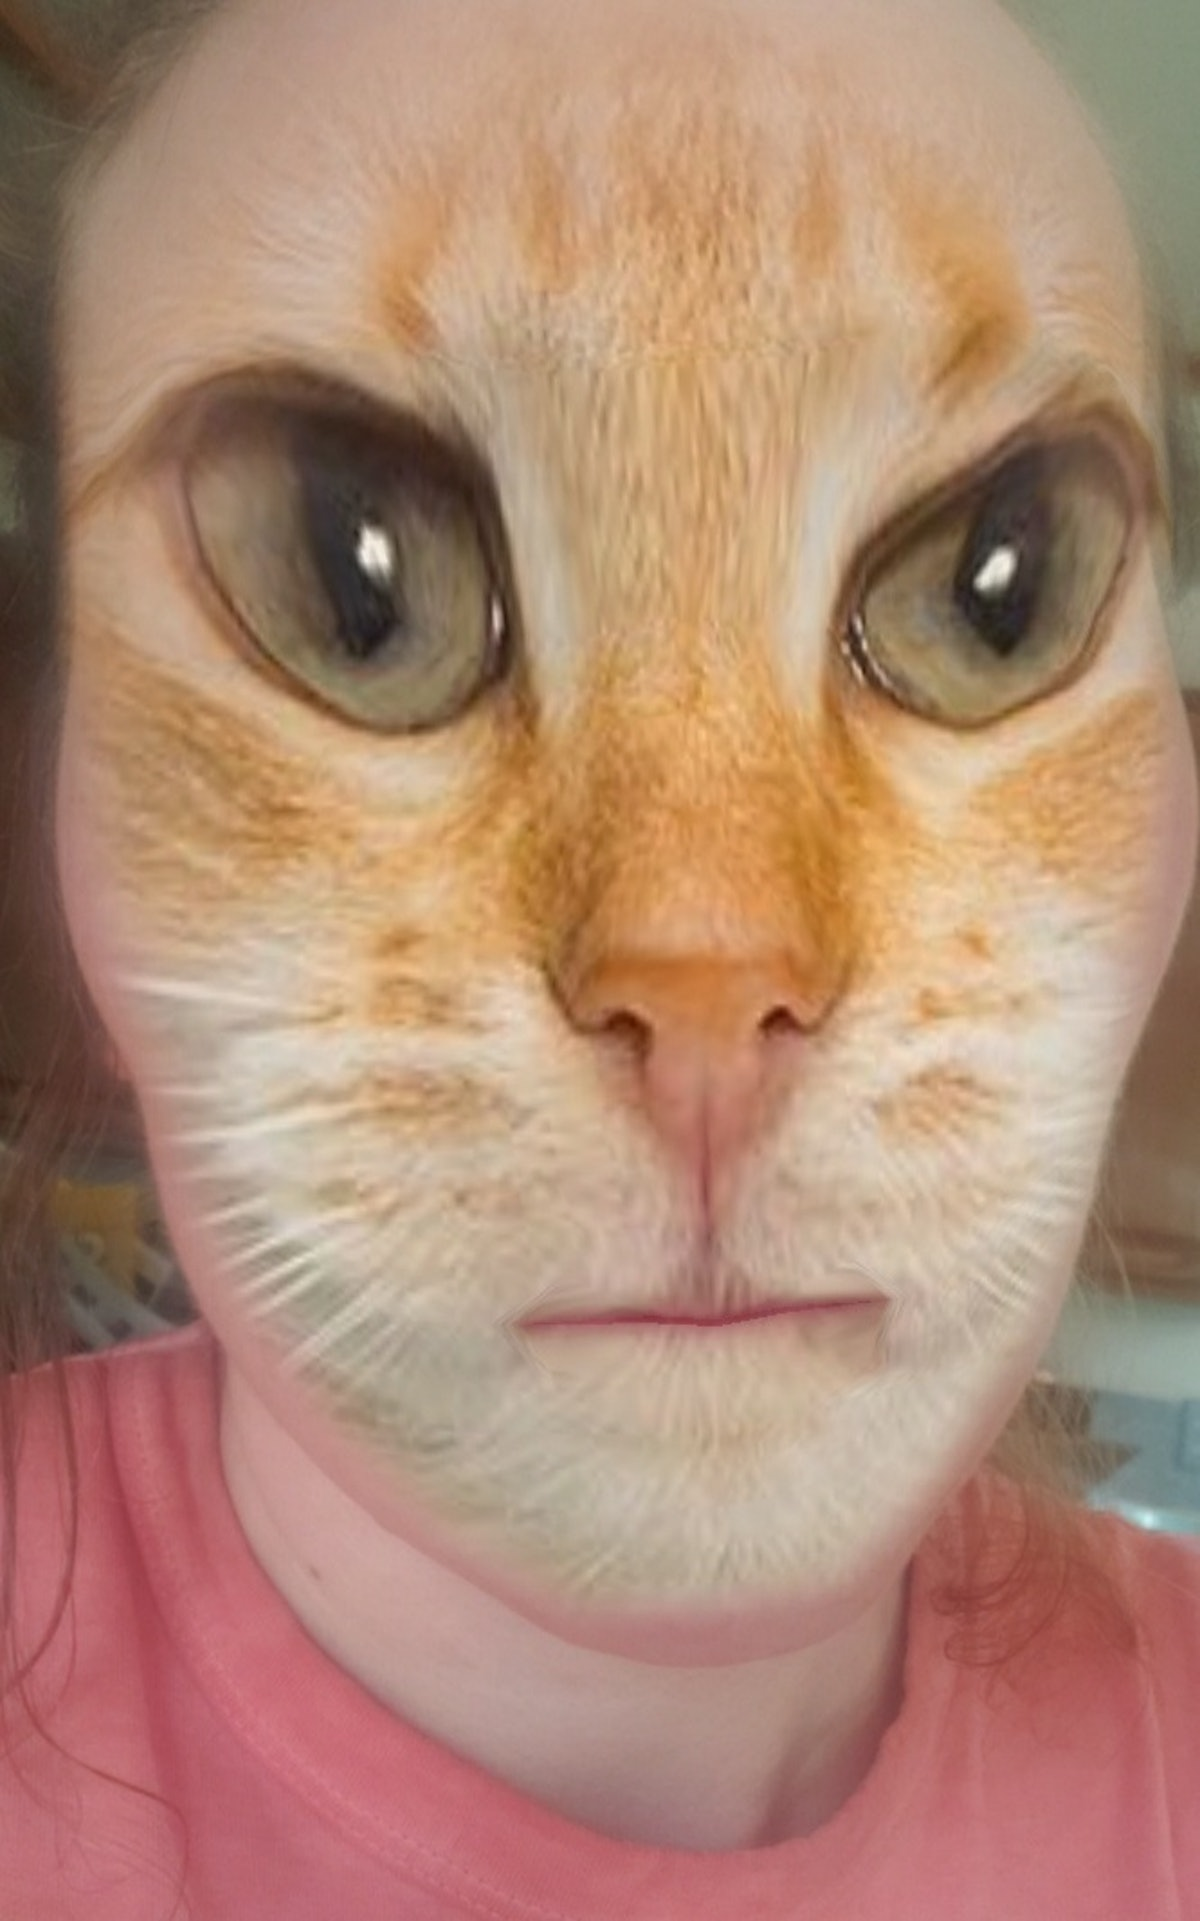 Here's how to get a cat face filter on Snapchat to get in on the fun.